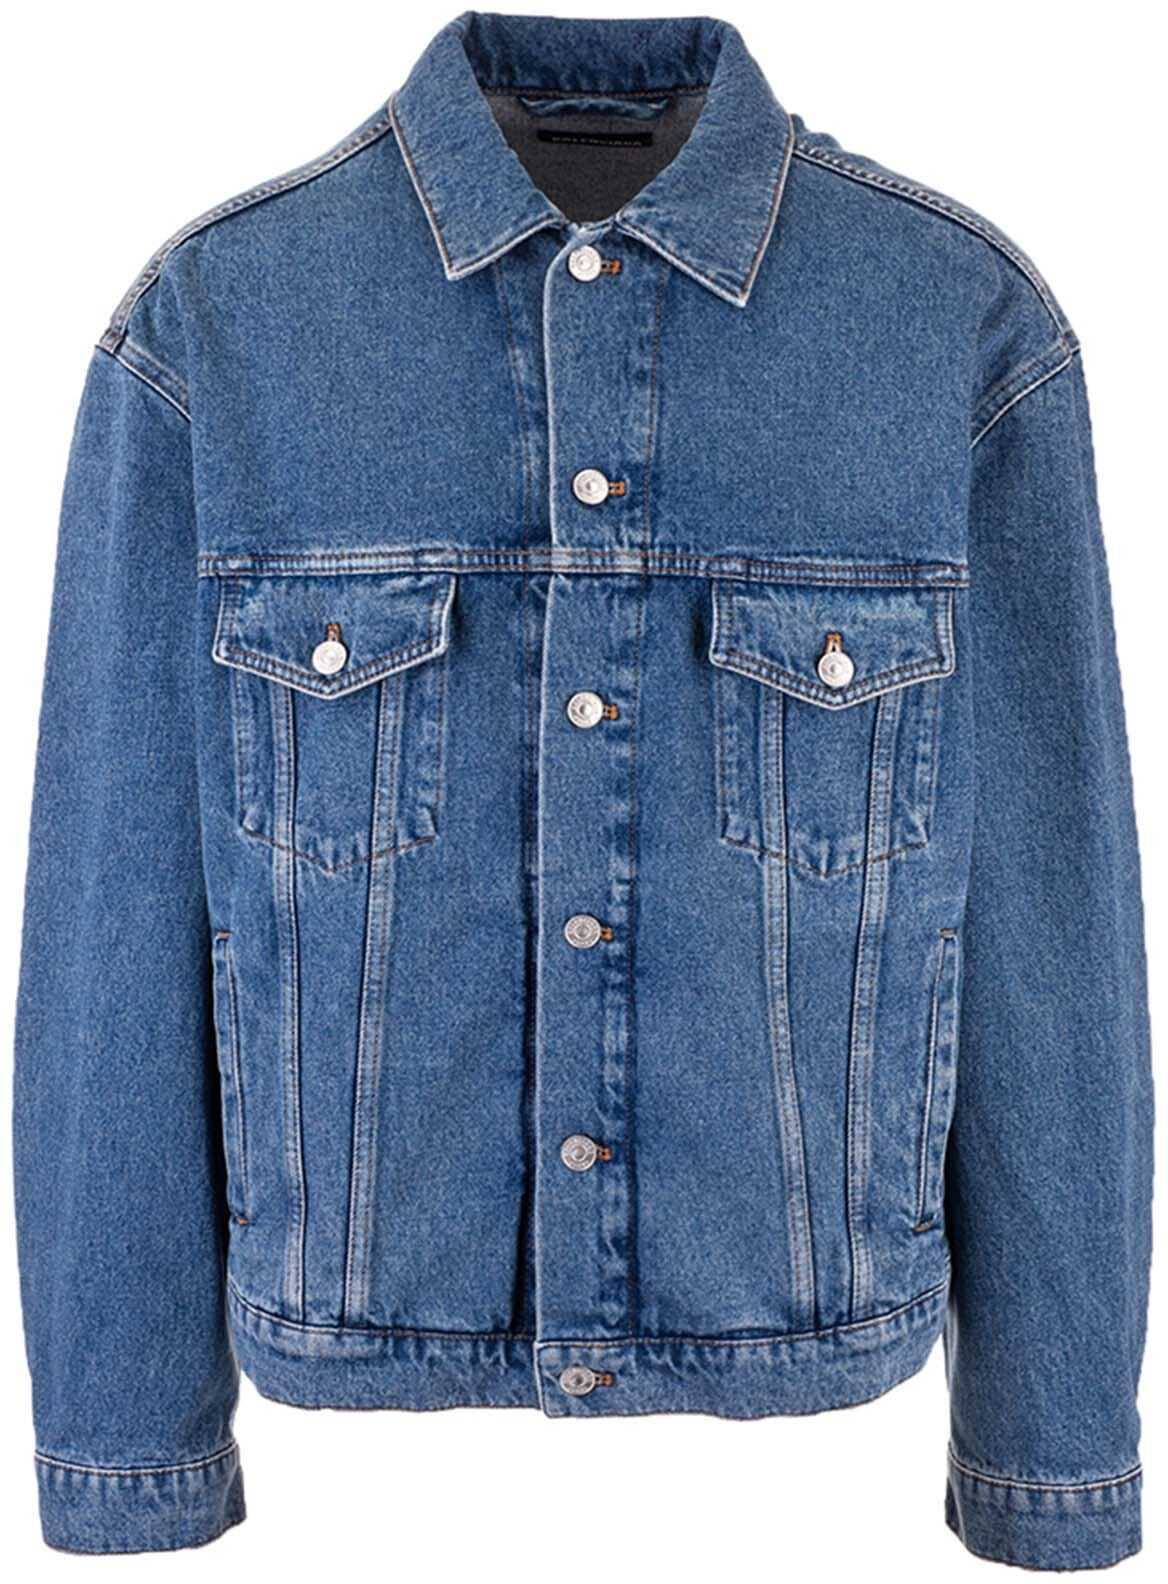 Balenciaga Languages Denim Jacket In Blue Blue imagine